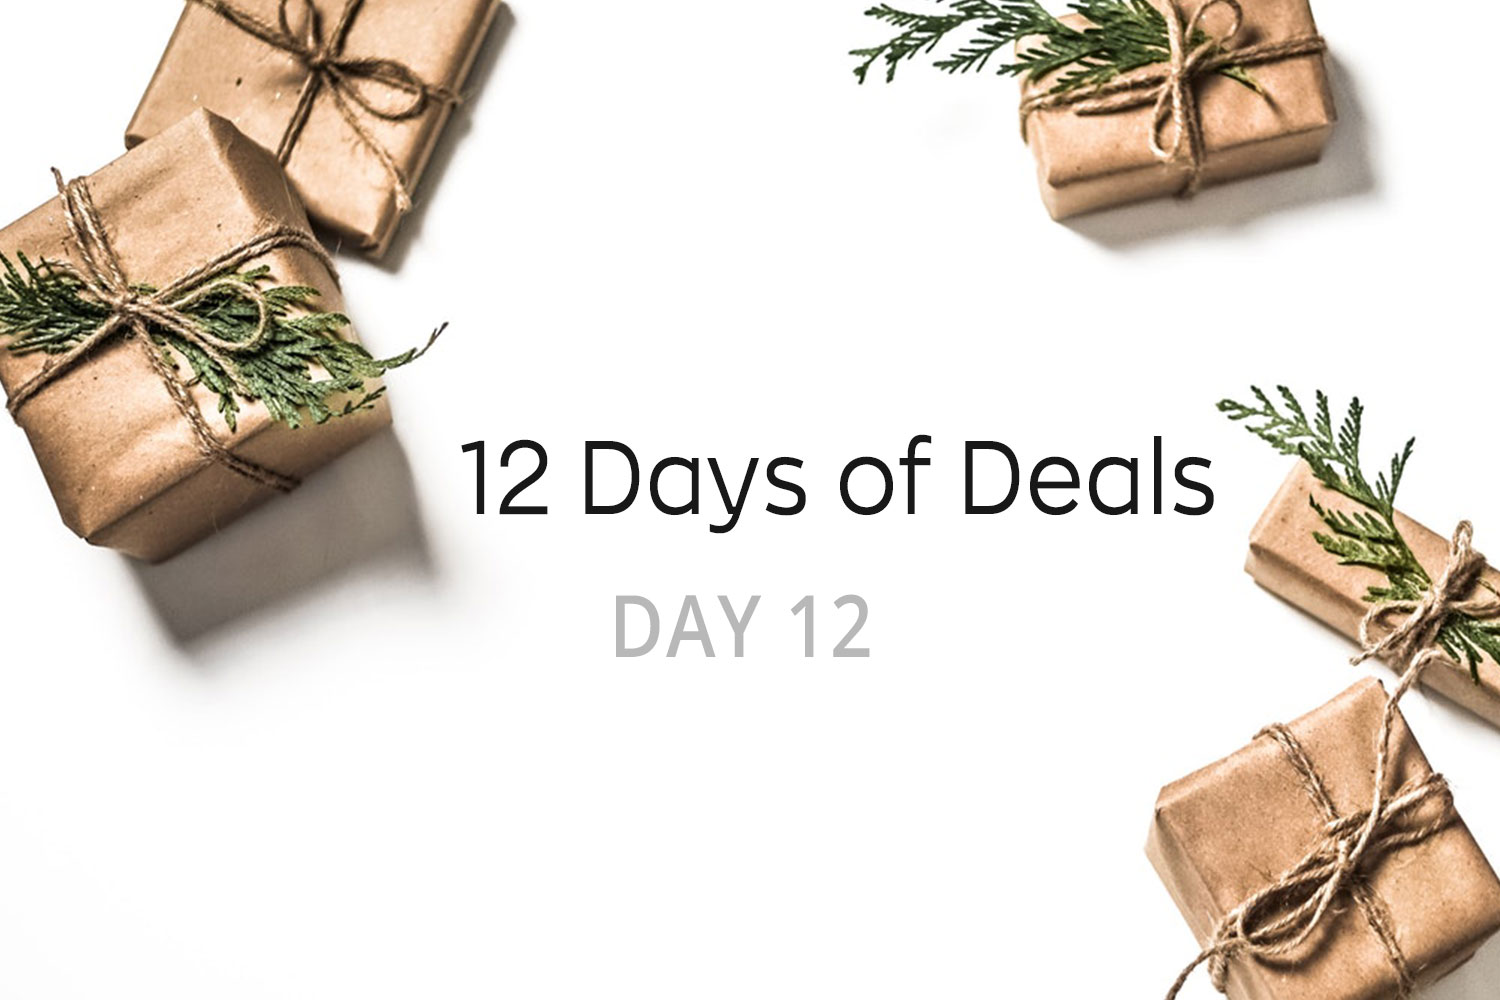 Nlc 12 deals of christmas